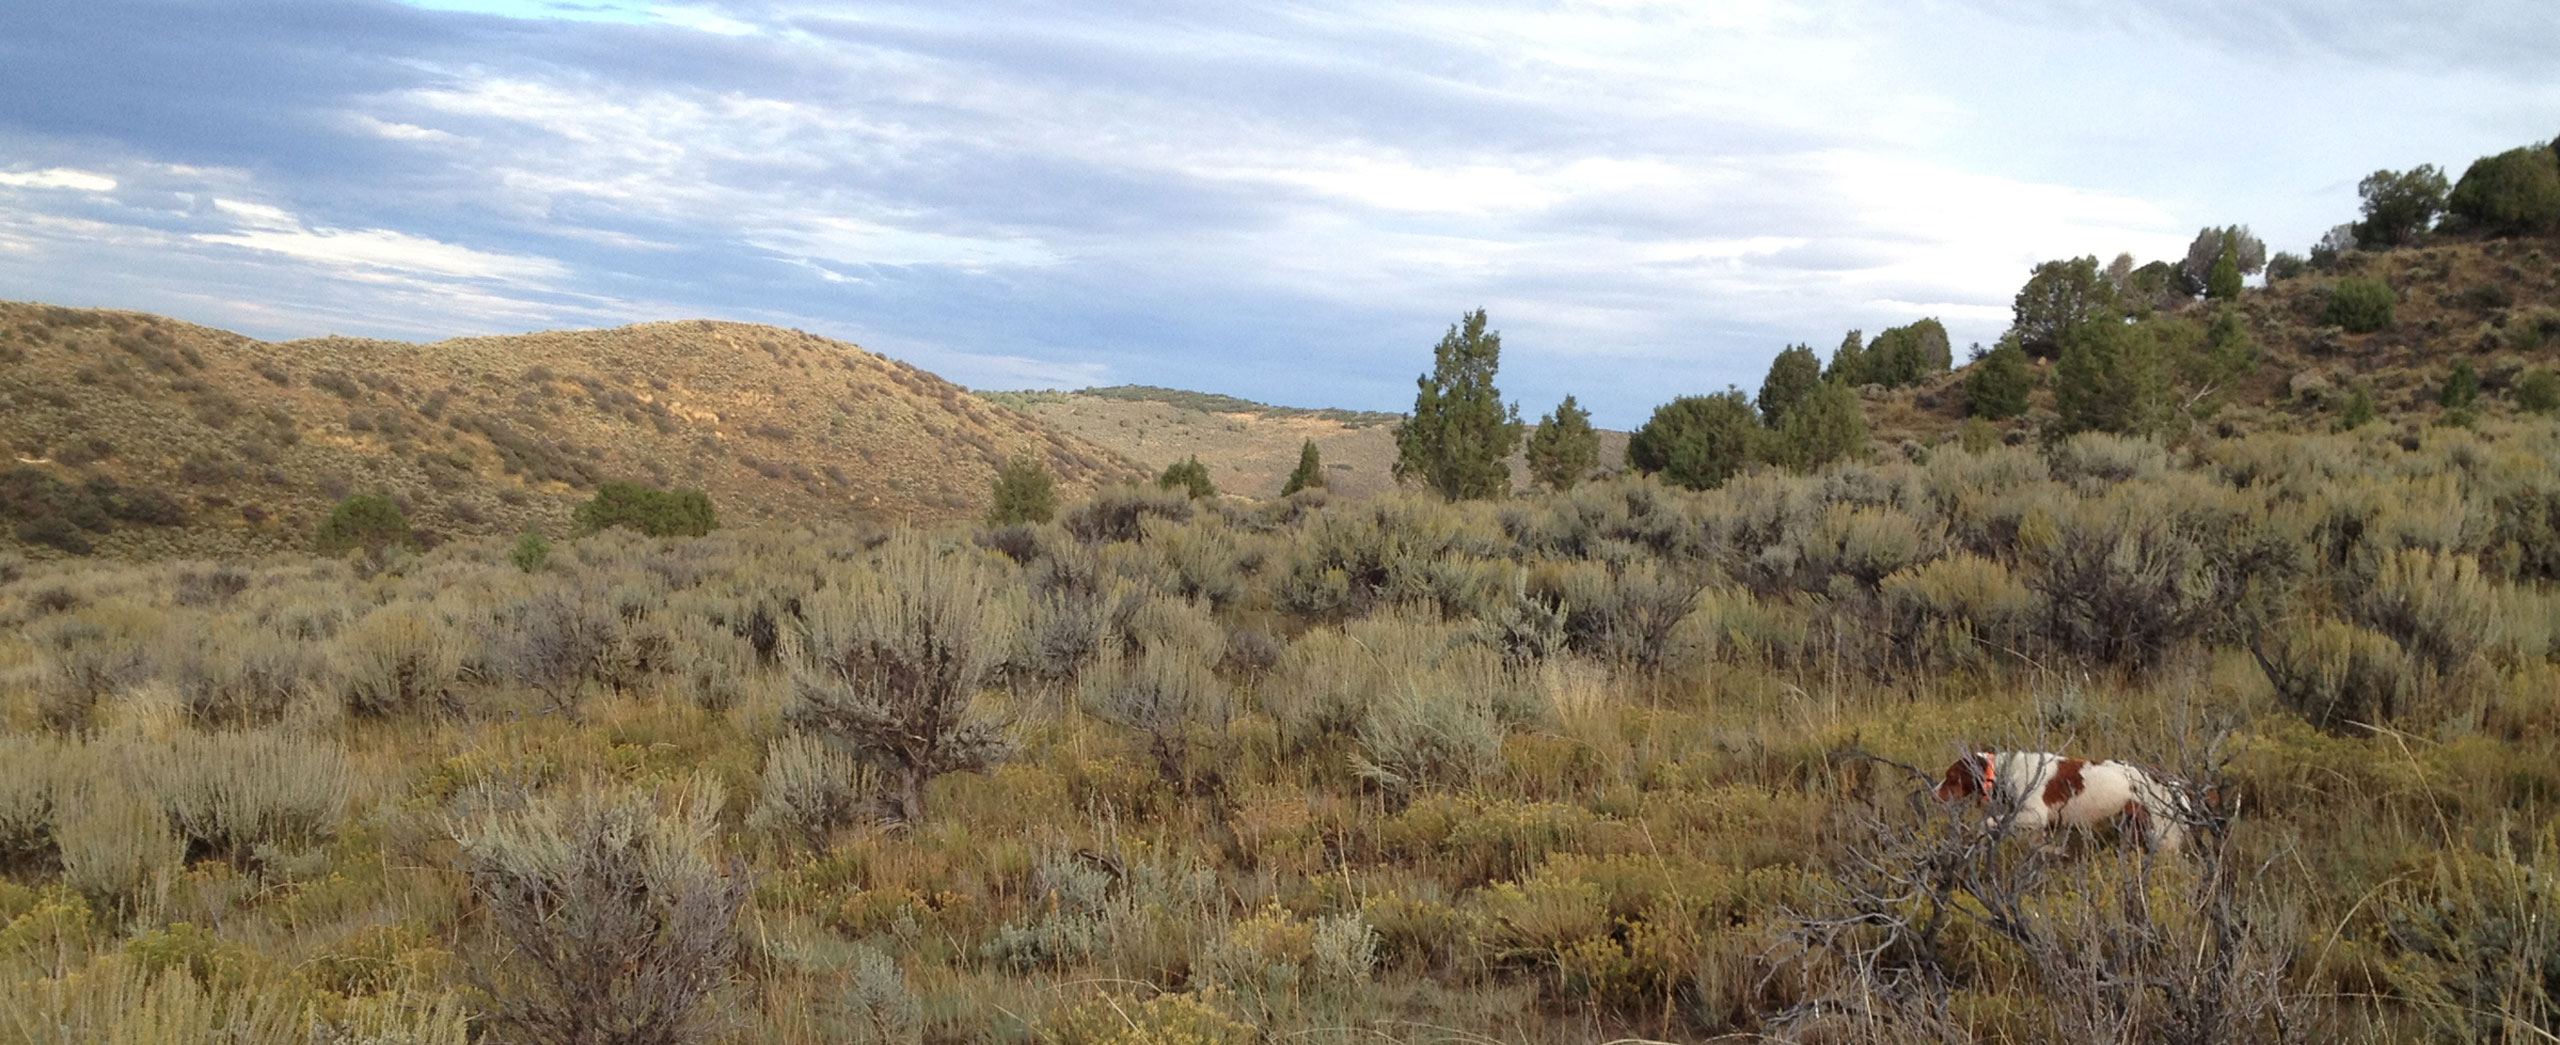 http://75.103.90.230/wp/wp-content/uploads/2014/08/slideshow-sagebrush.jpg